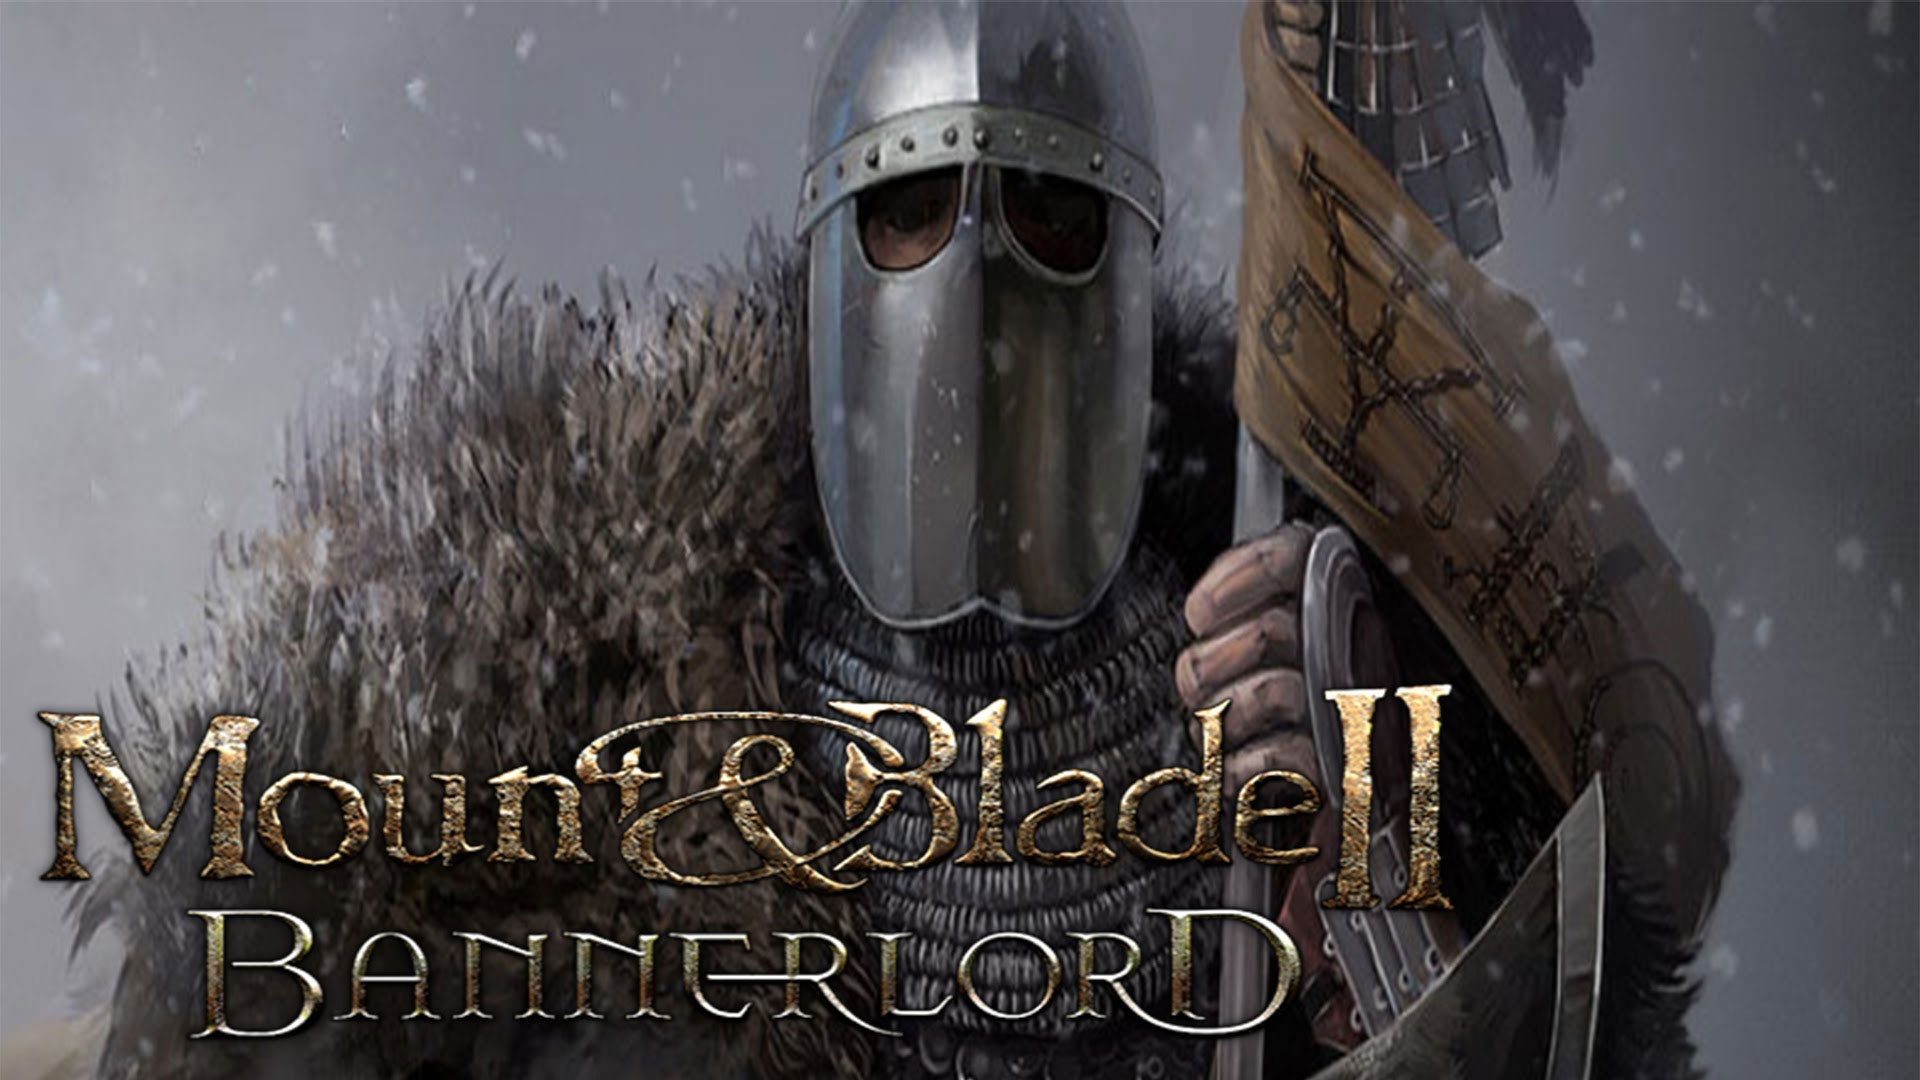 Mount & Blade 2 Bannerlord Wallpapers in Ultra HD | 4K - Gameranx